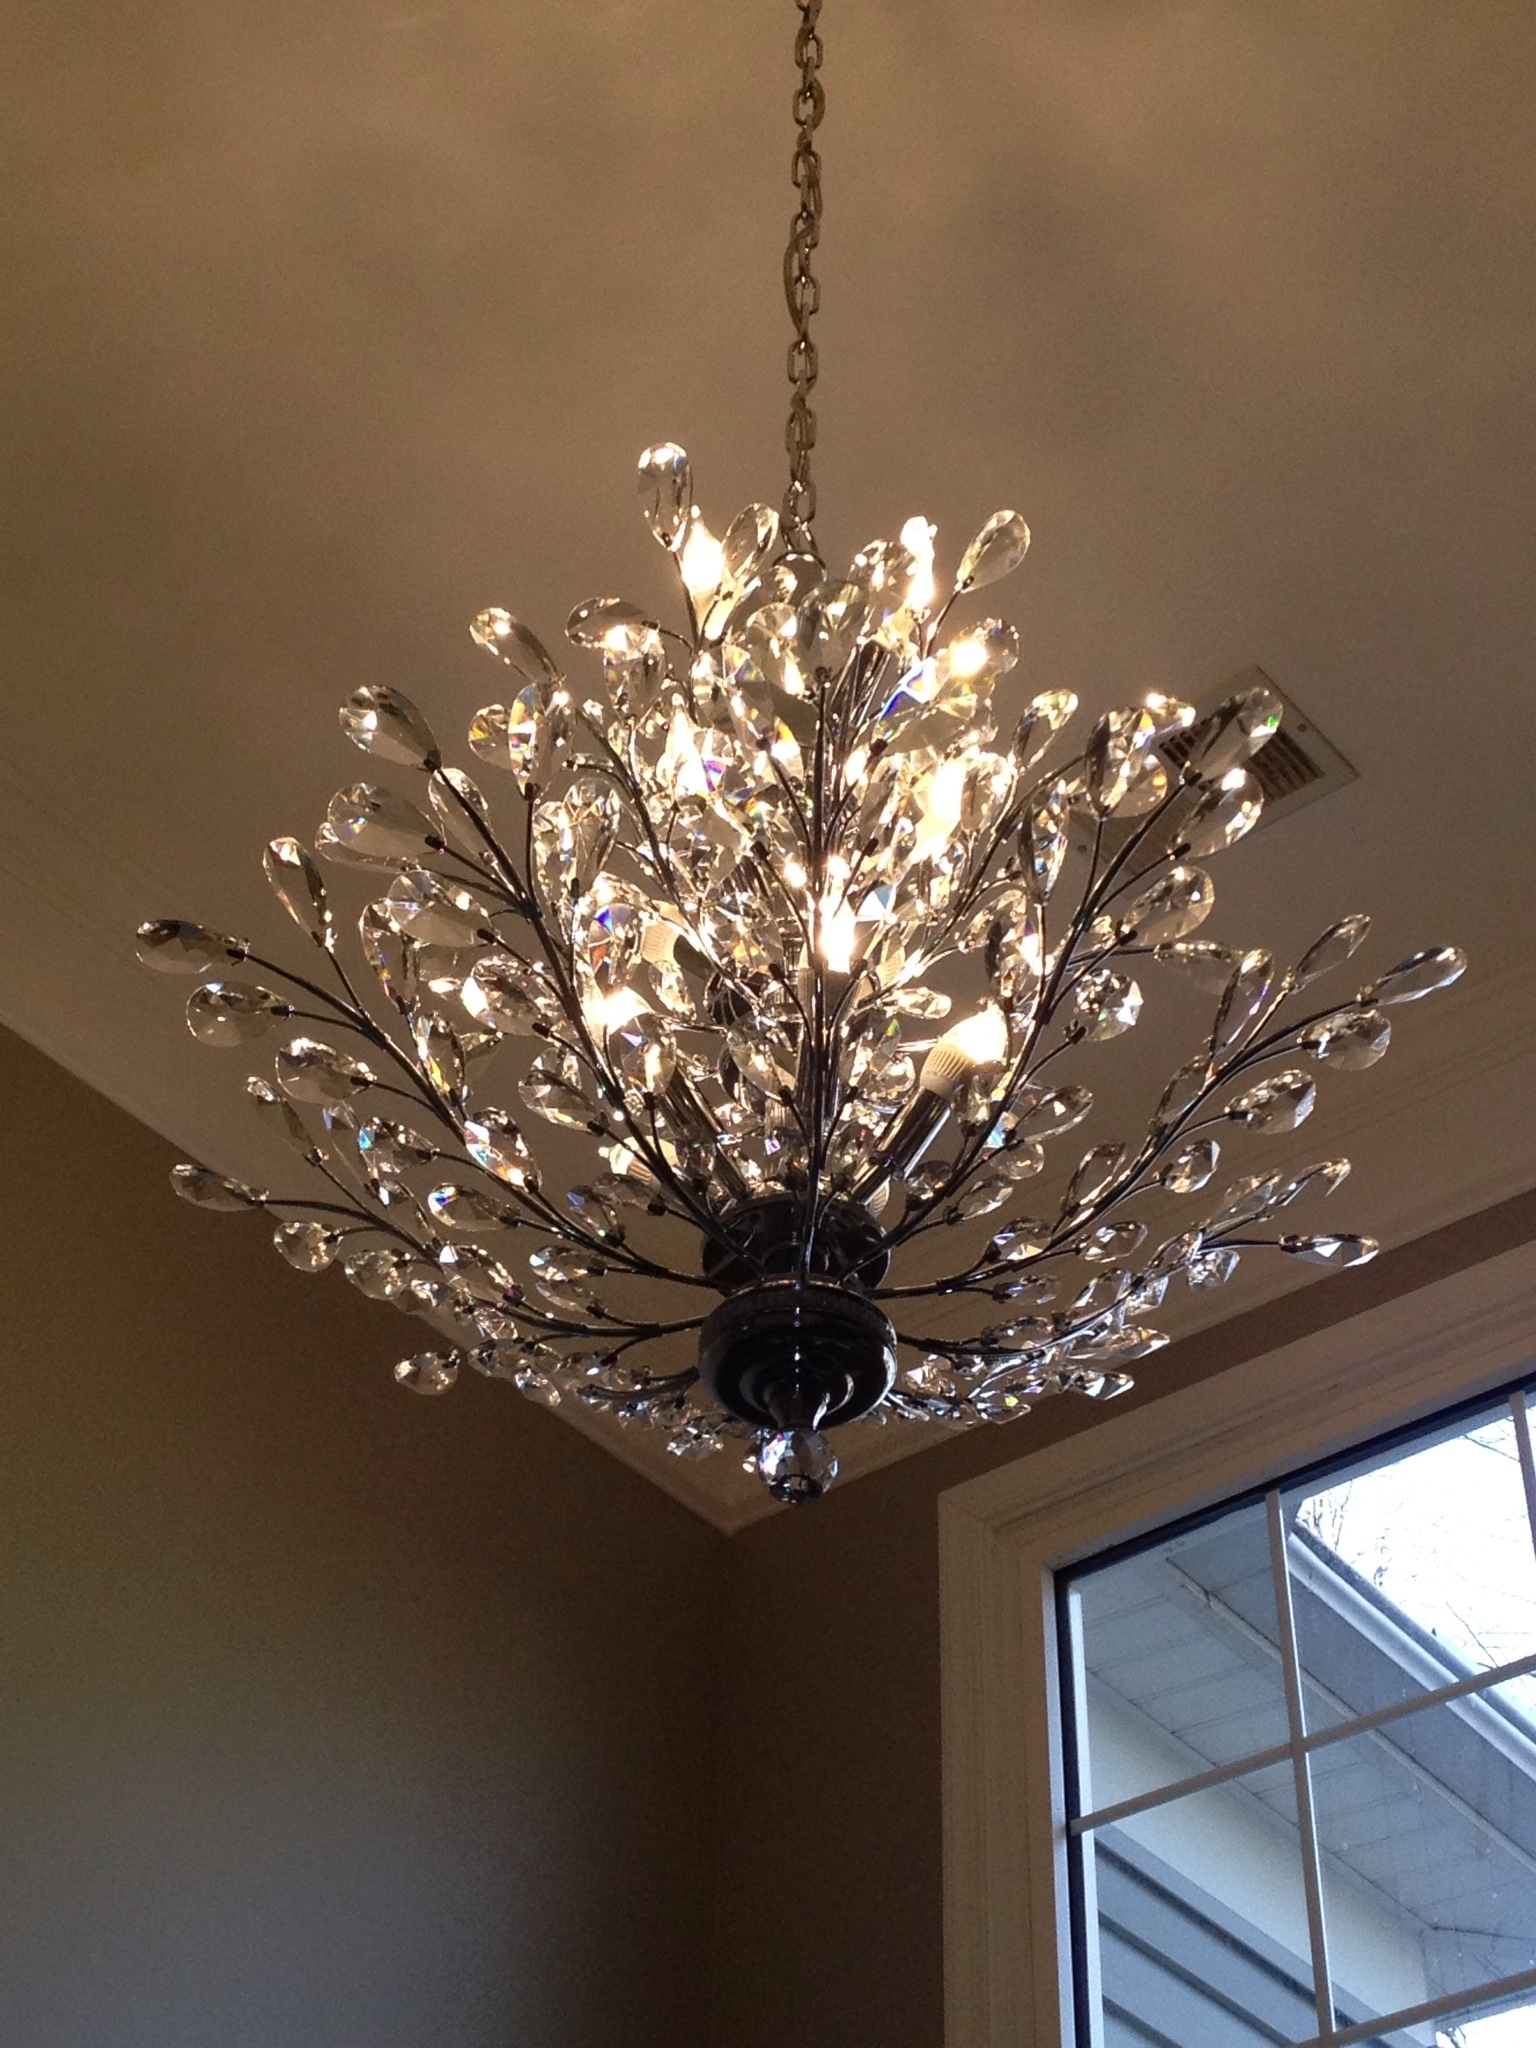 Foyer Chandelier Branch Of Light Design Joshua Marshall Home Throughout Branch Crystal Chandelier (#7 of 12)